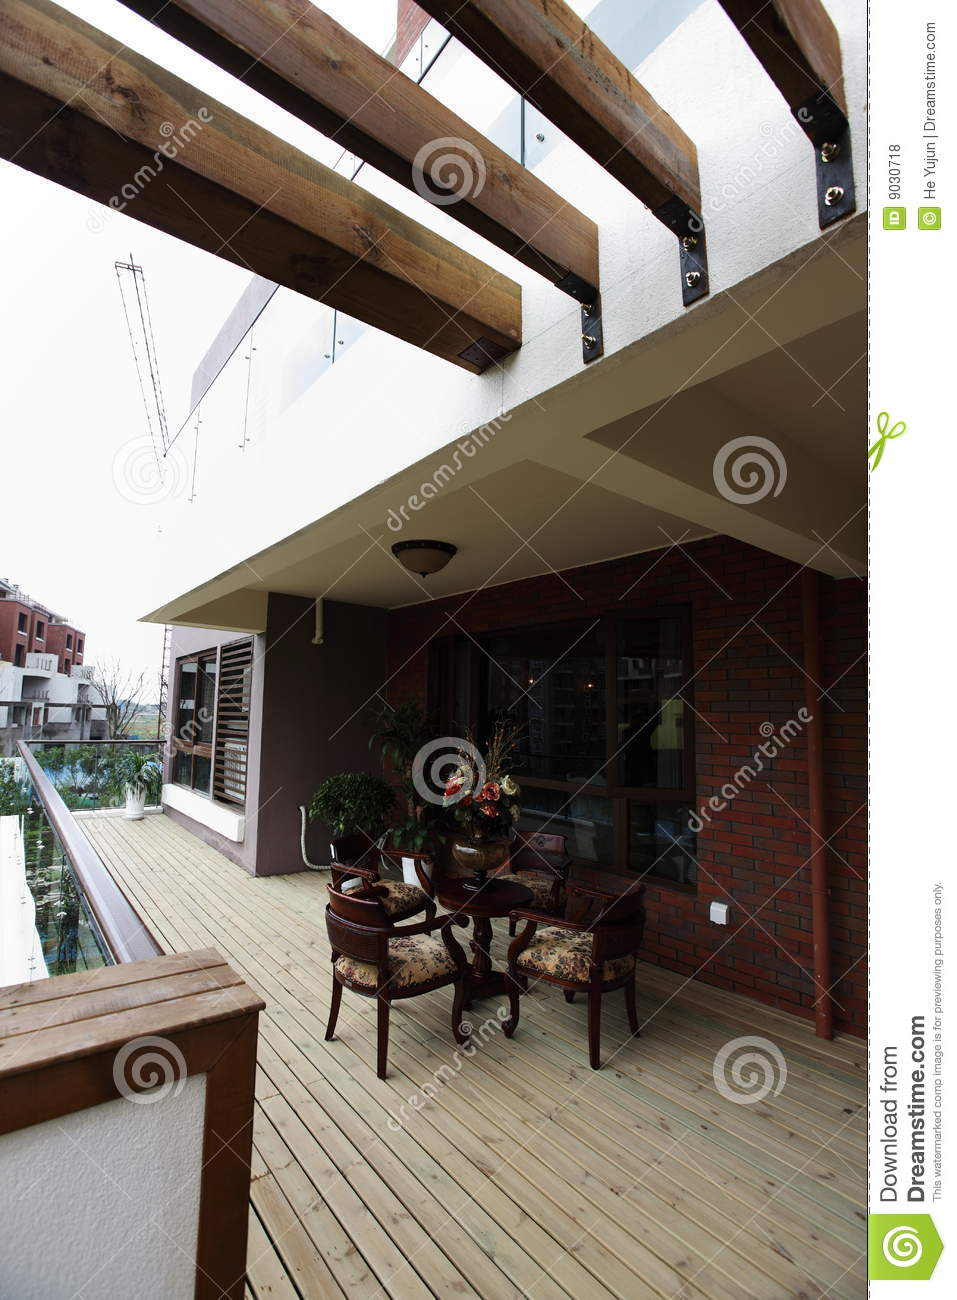 New Appartments Royalty Free Stock Photos Image 9030718